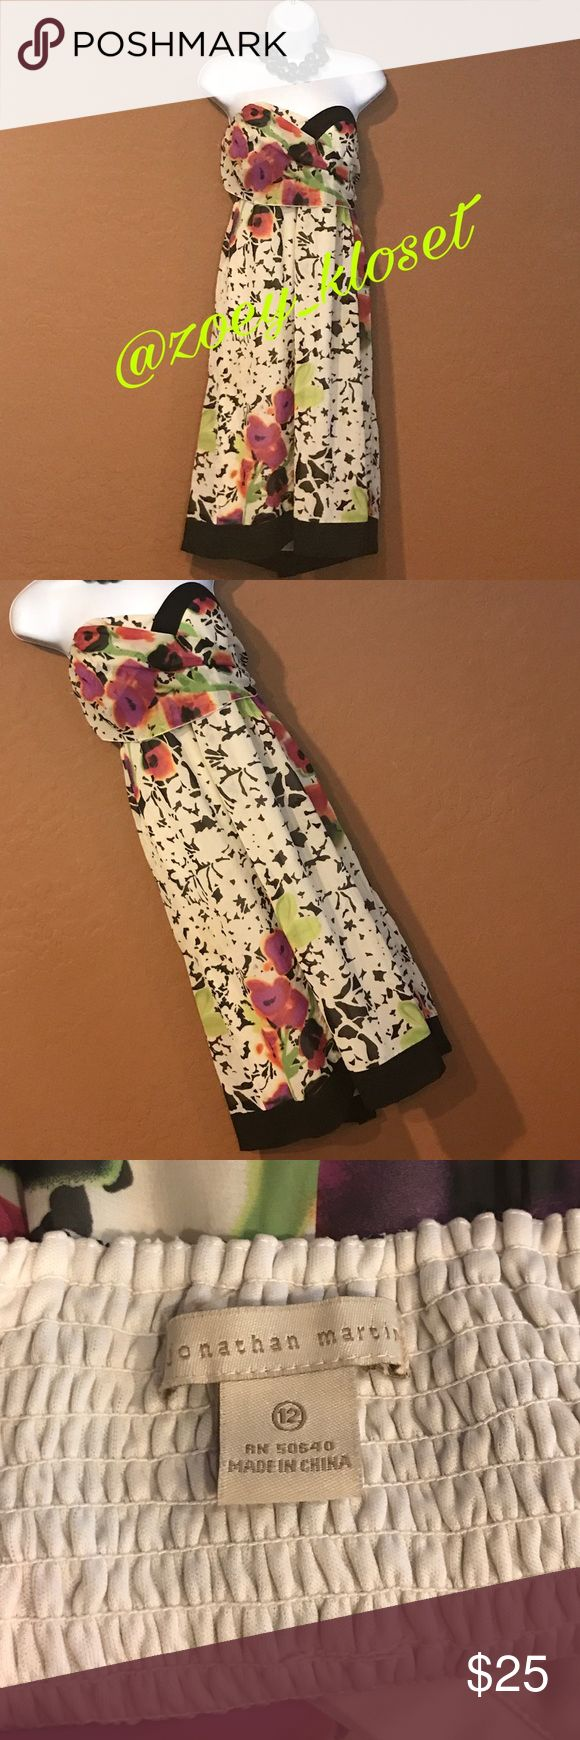 👗 Jonathan Martin Floral Tube Top Dress Excellent Condition, Tube Top, Extra Stretch Back, Lined, Great Colors & Print. Jonathan Martin Dresses